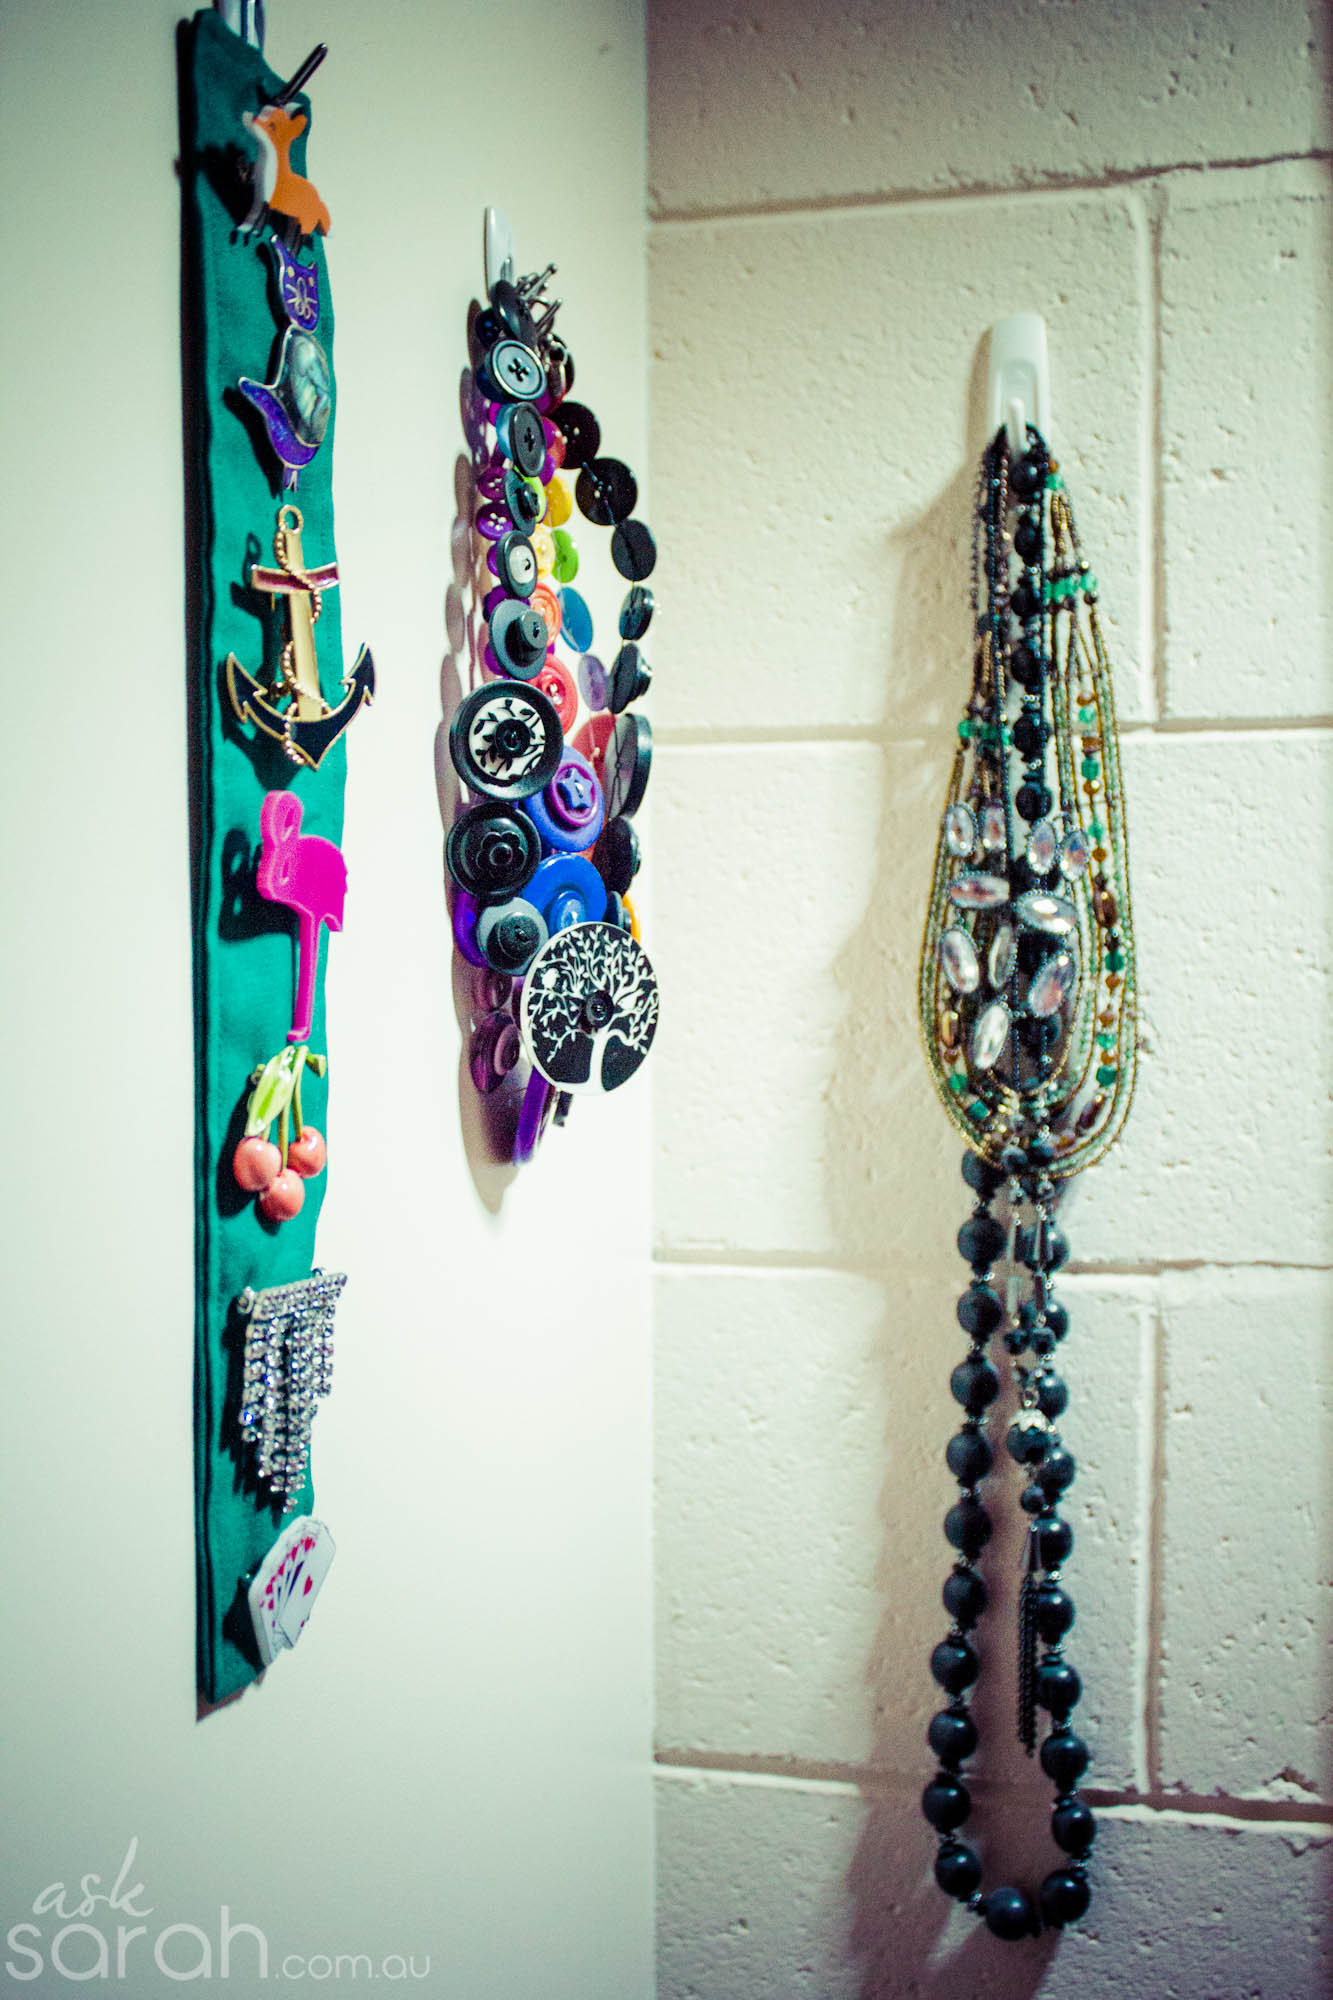 Tip: DIY Accessory Storage {Organize Necklaces, Brooches, Hair Clips, Head Bands & More}